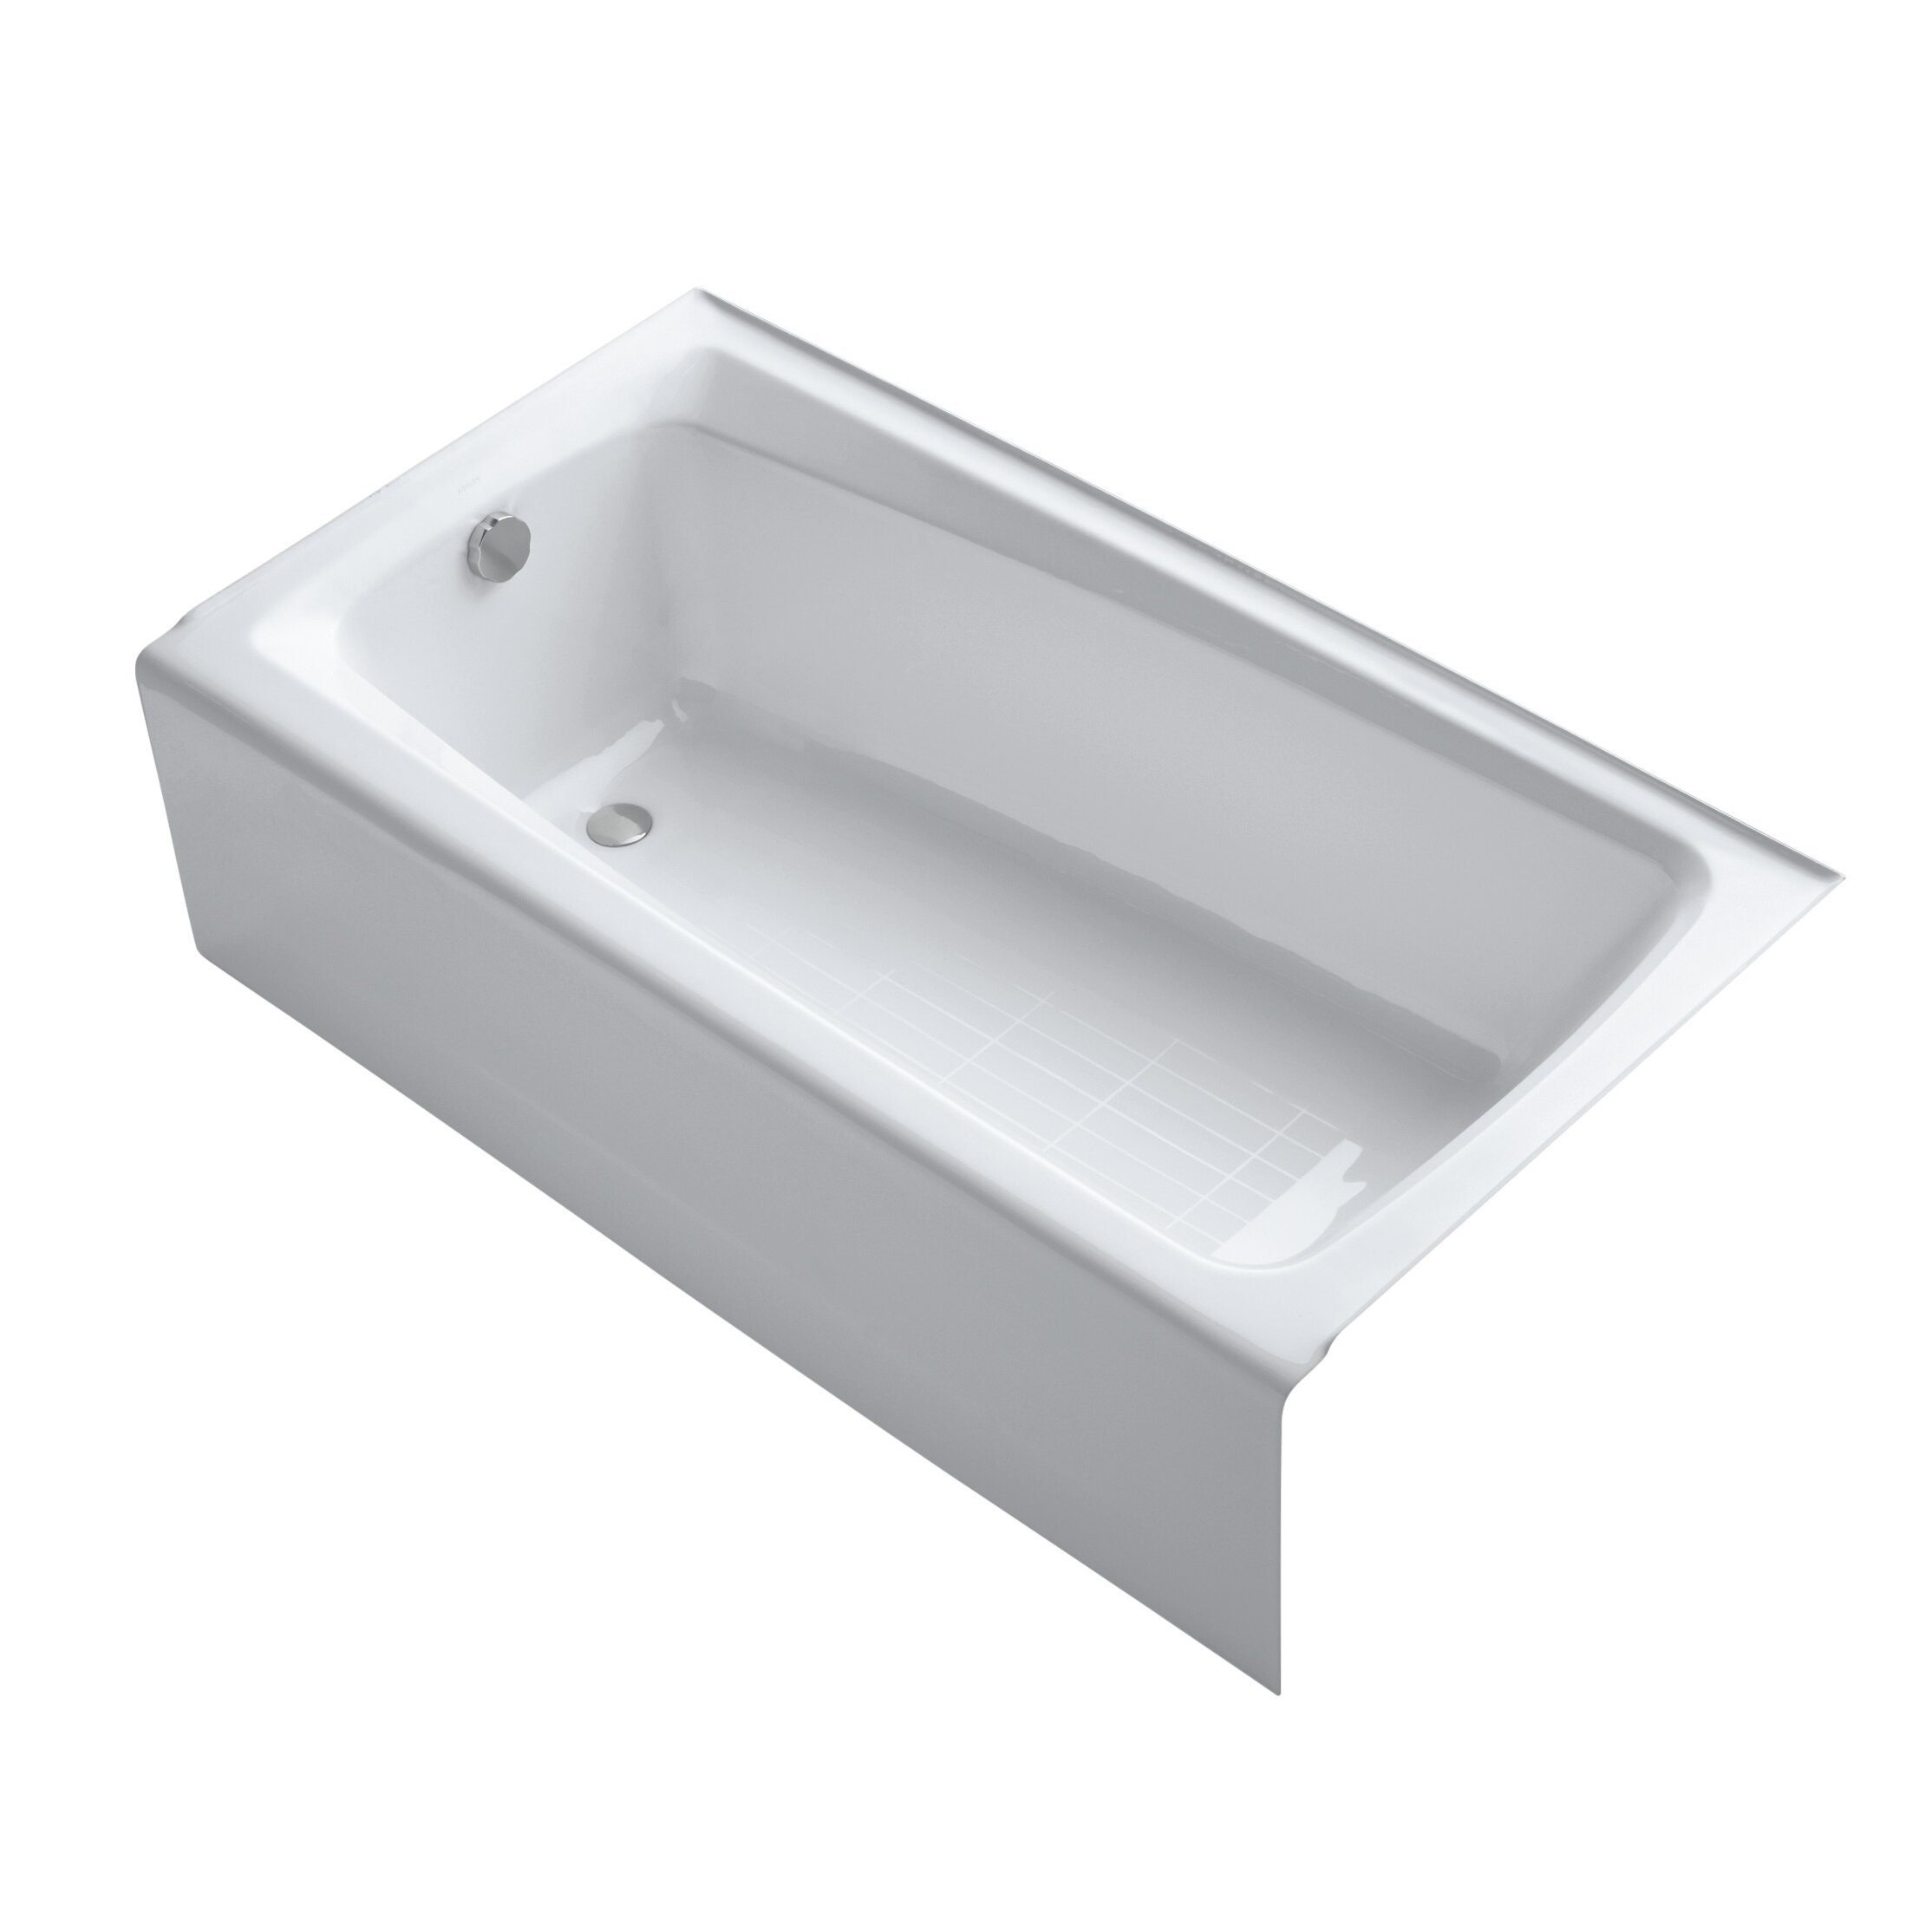 kohler mendota 60 x 32 soaking bathtub reviews wayfair